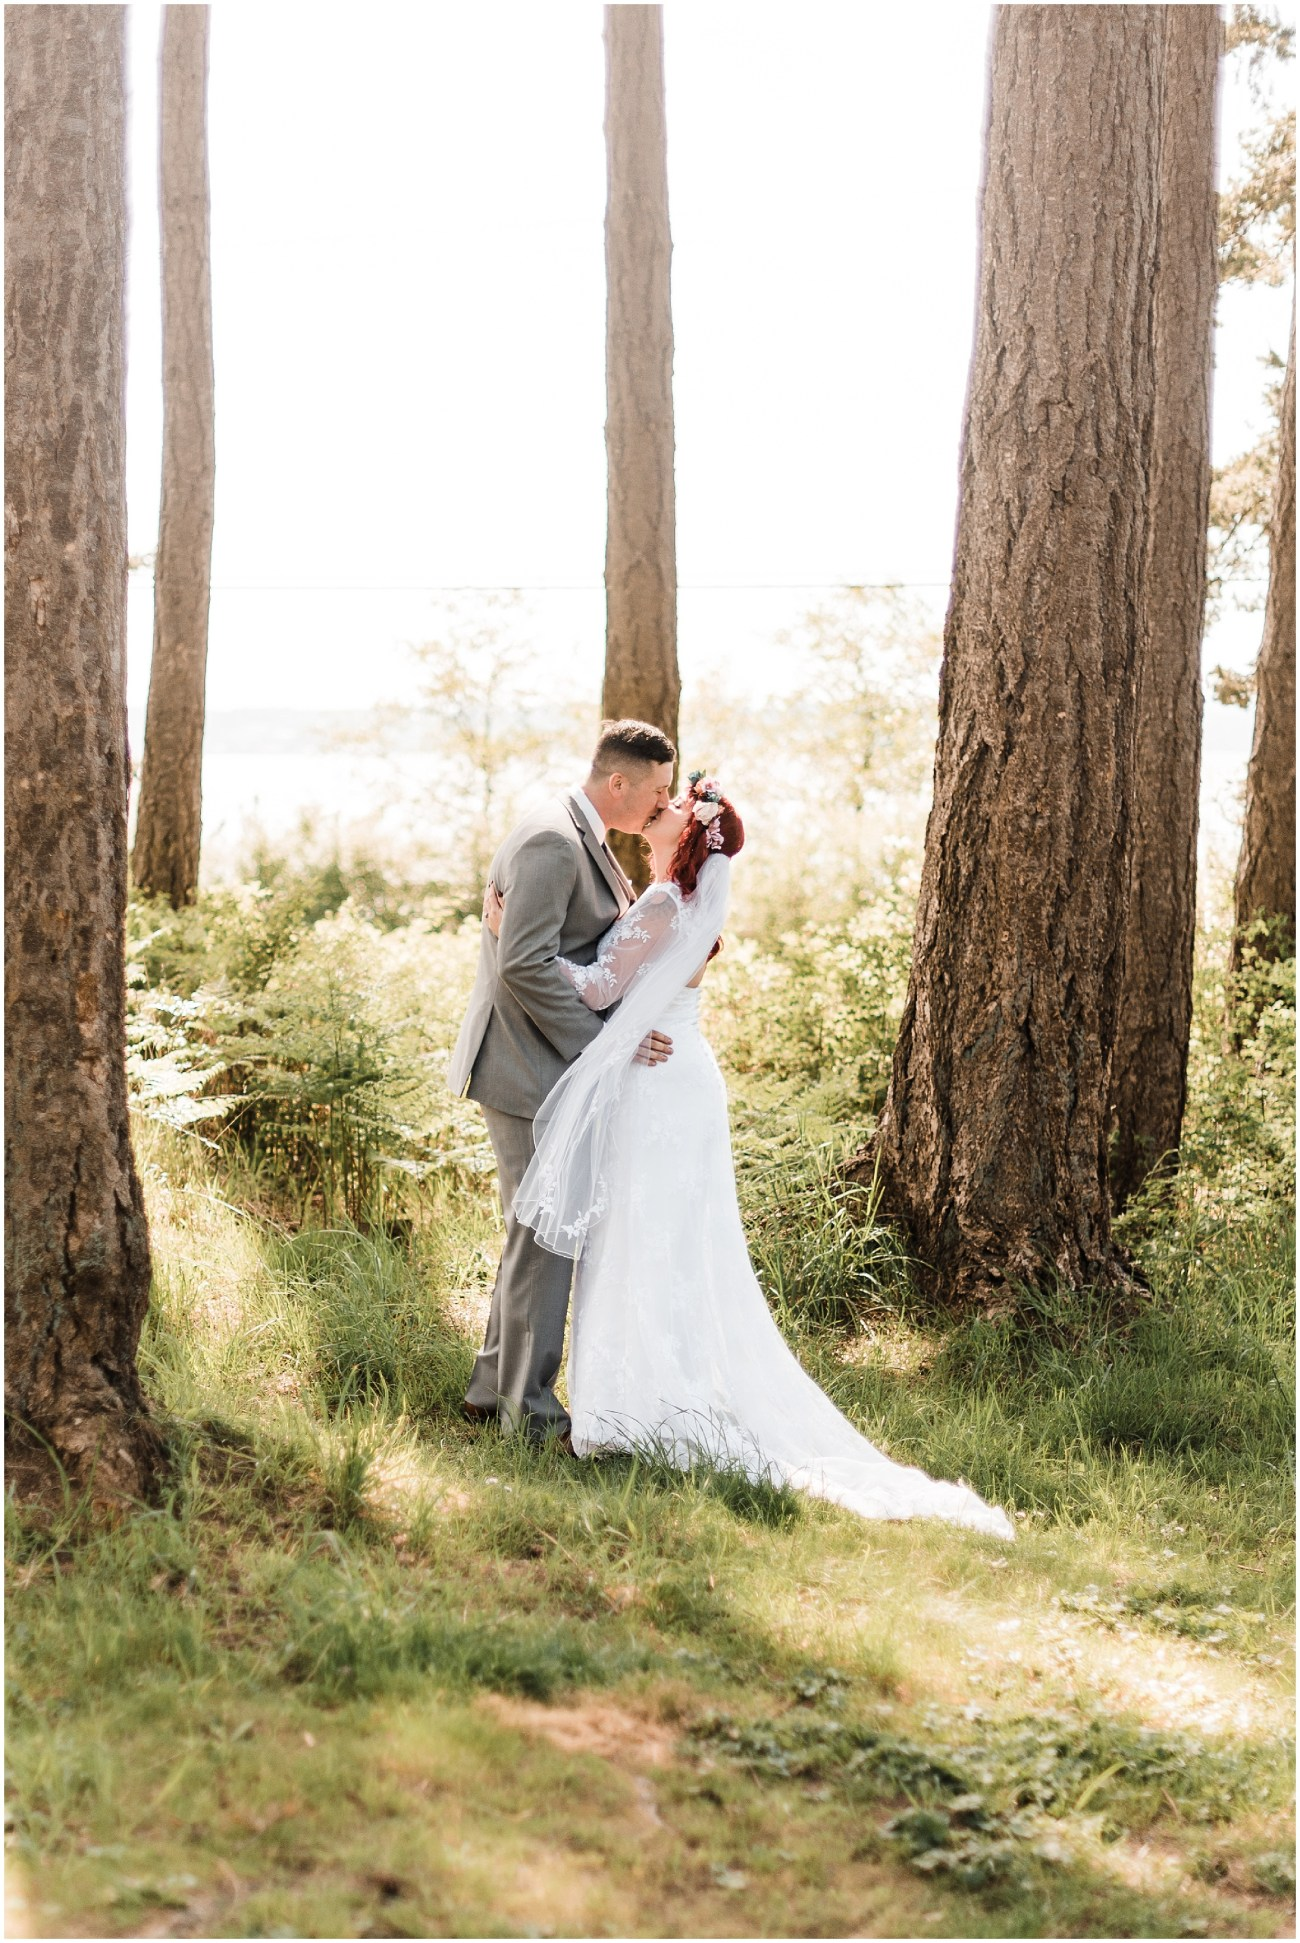 Photo of a bride and groom kissing in a forest during their first look